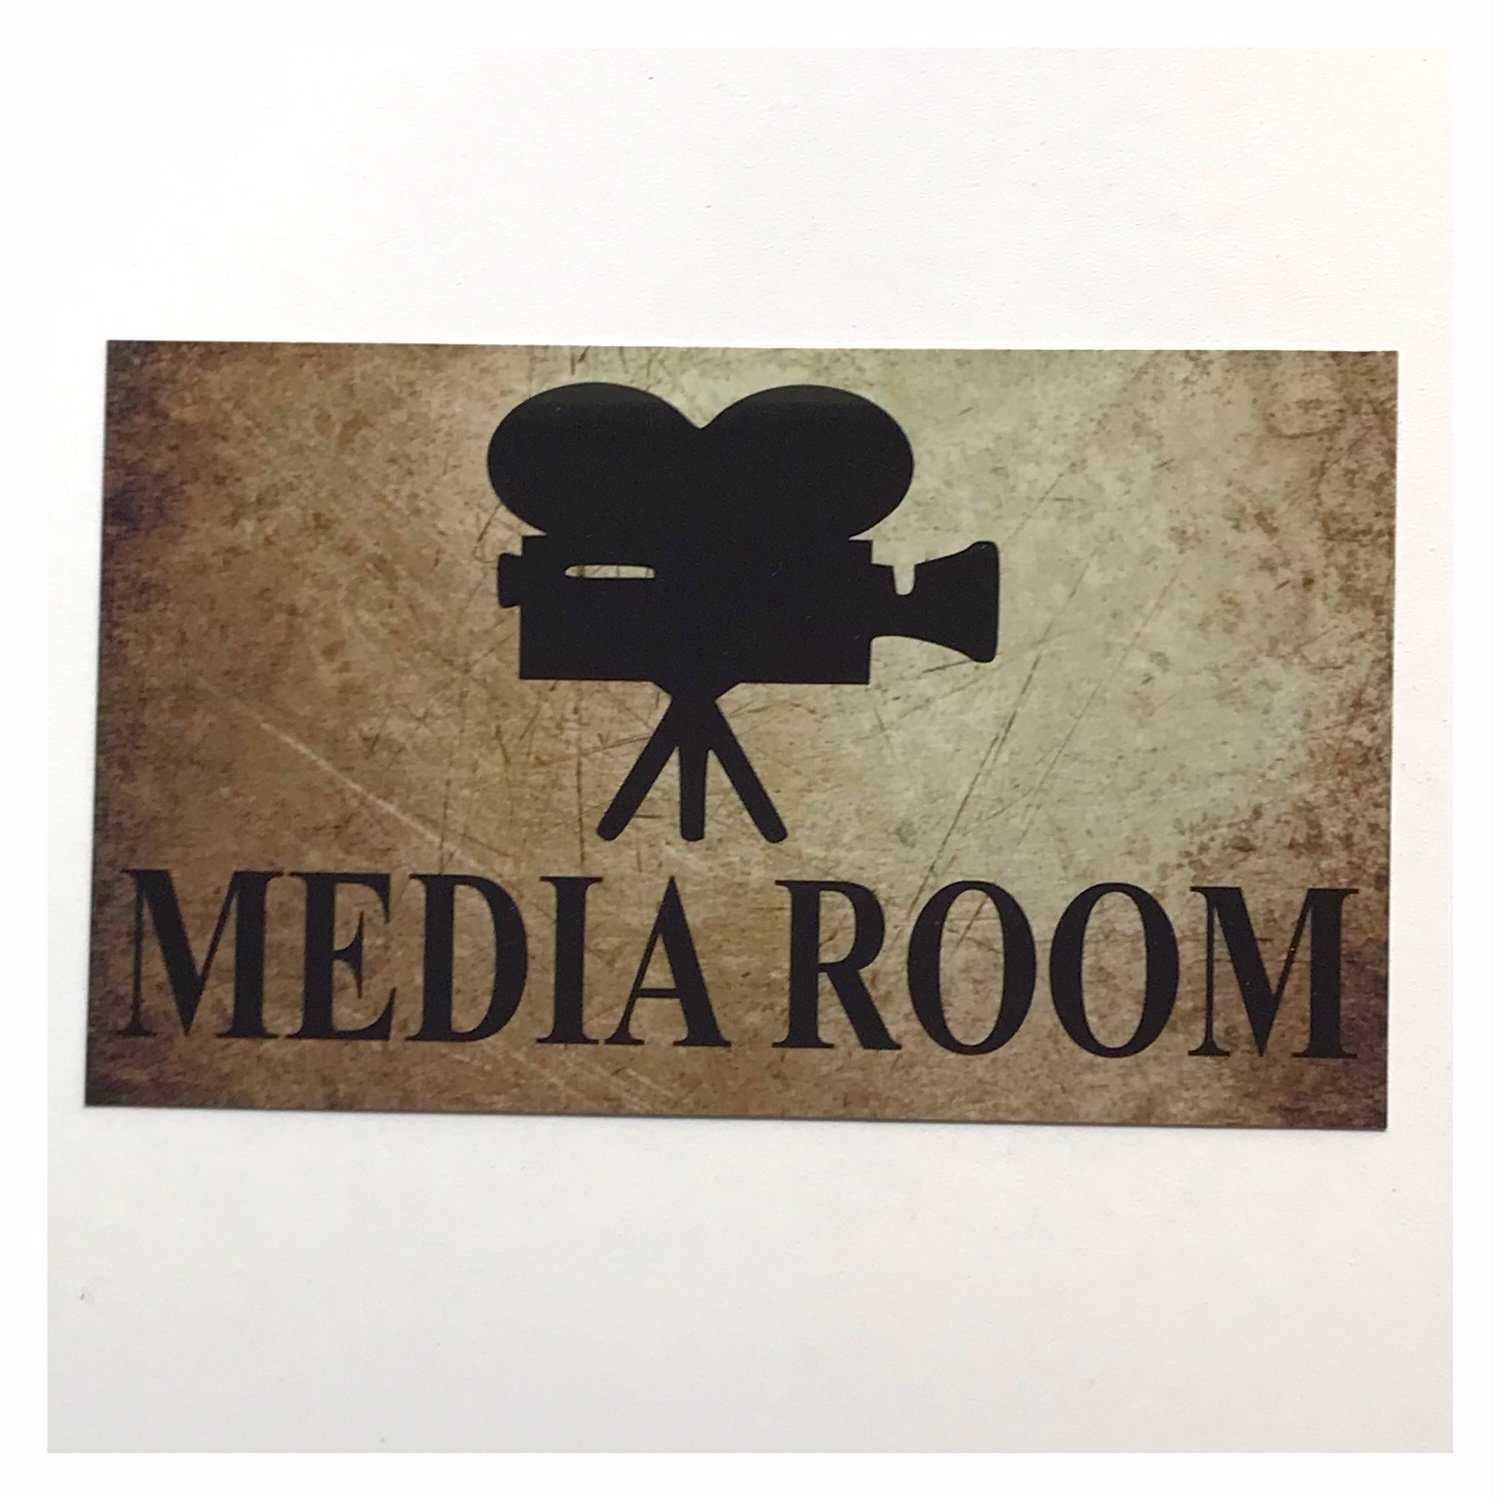 Media Room Rustic Vintage Door Sign Plaque or Hanging Plaques & Signs The Renmy Store